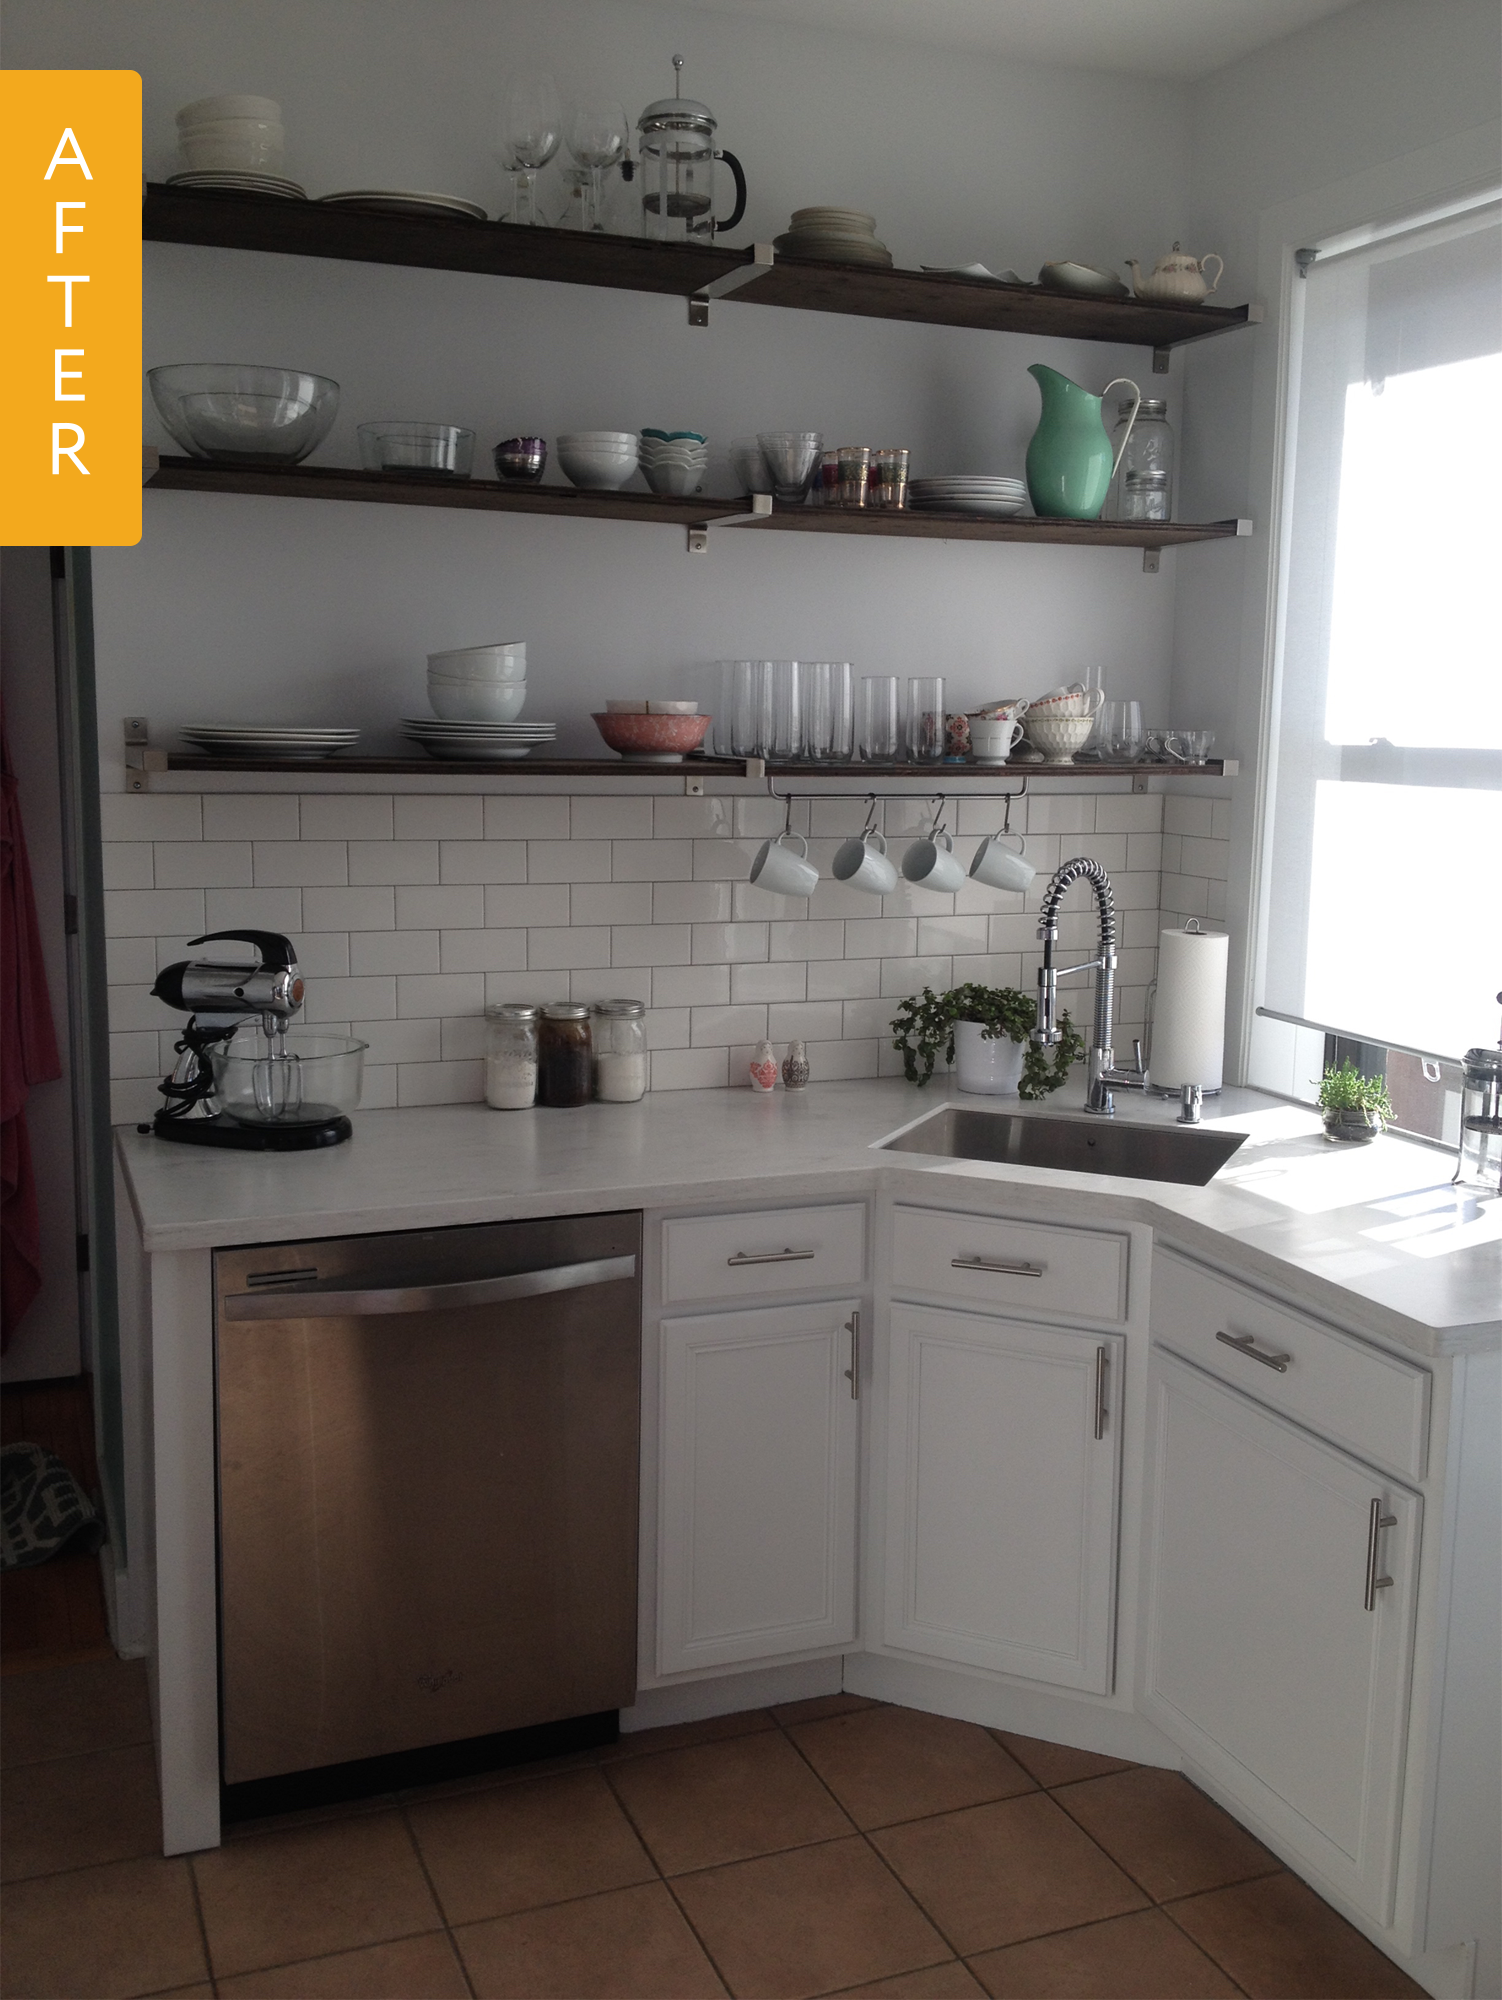 tiny kitchen remodel island vent before after a lightens up with 6 000 reader